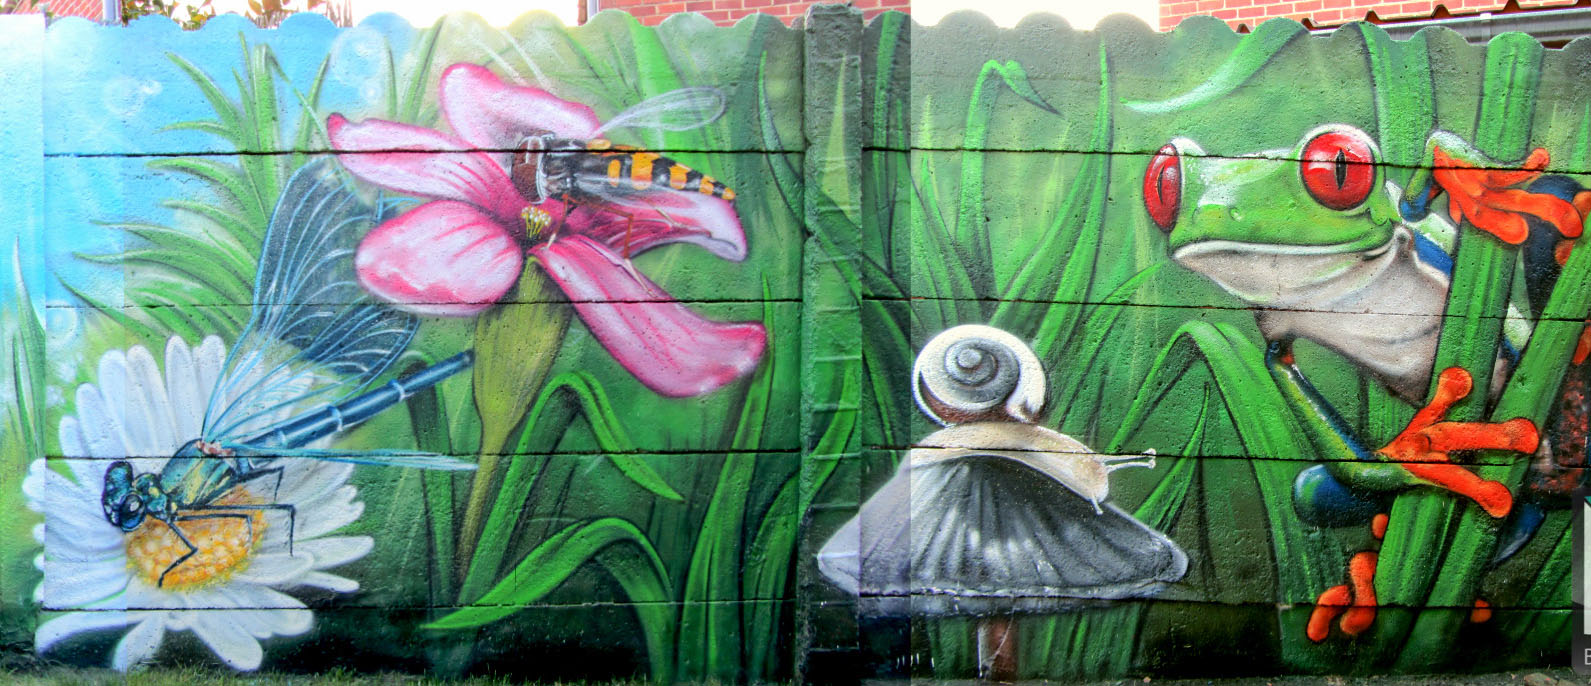 http://www.b-aero.be/wp-content/uploads/Nature-graffiti-belgique.jpg